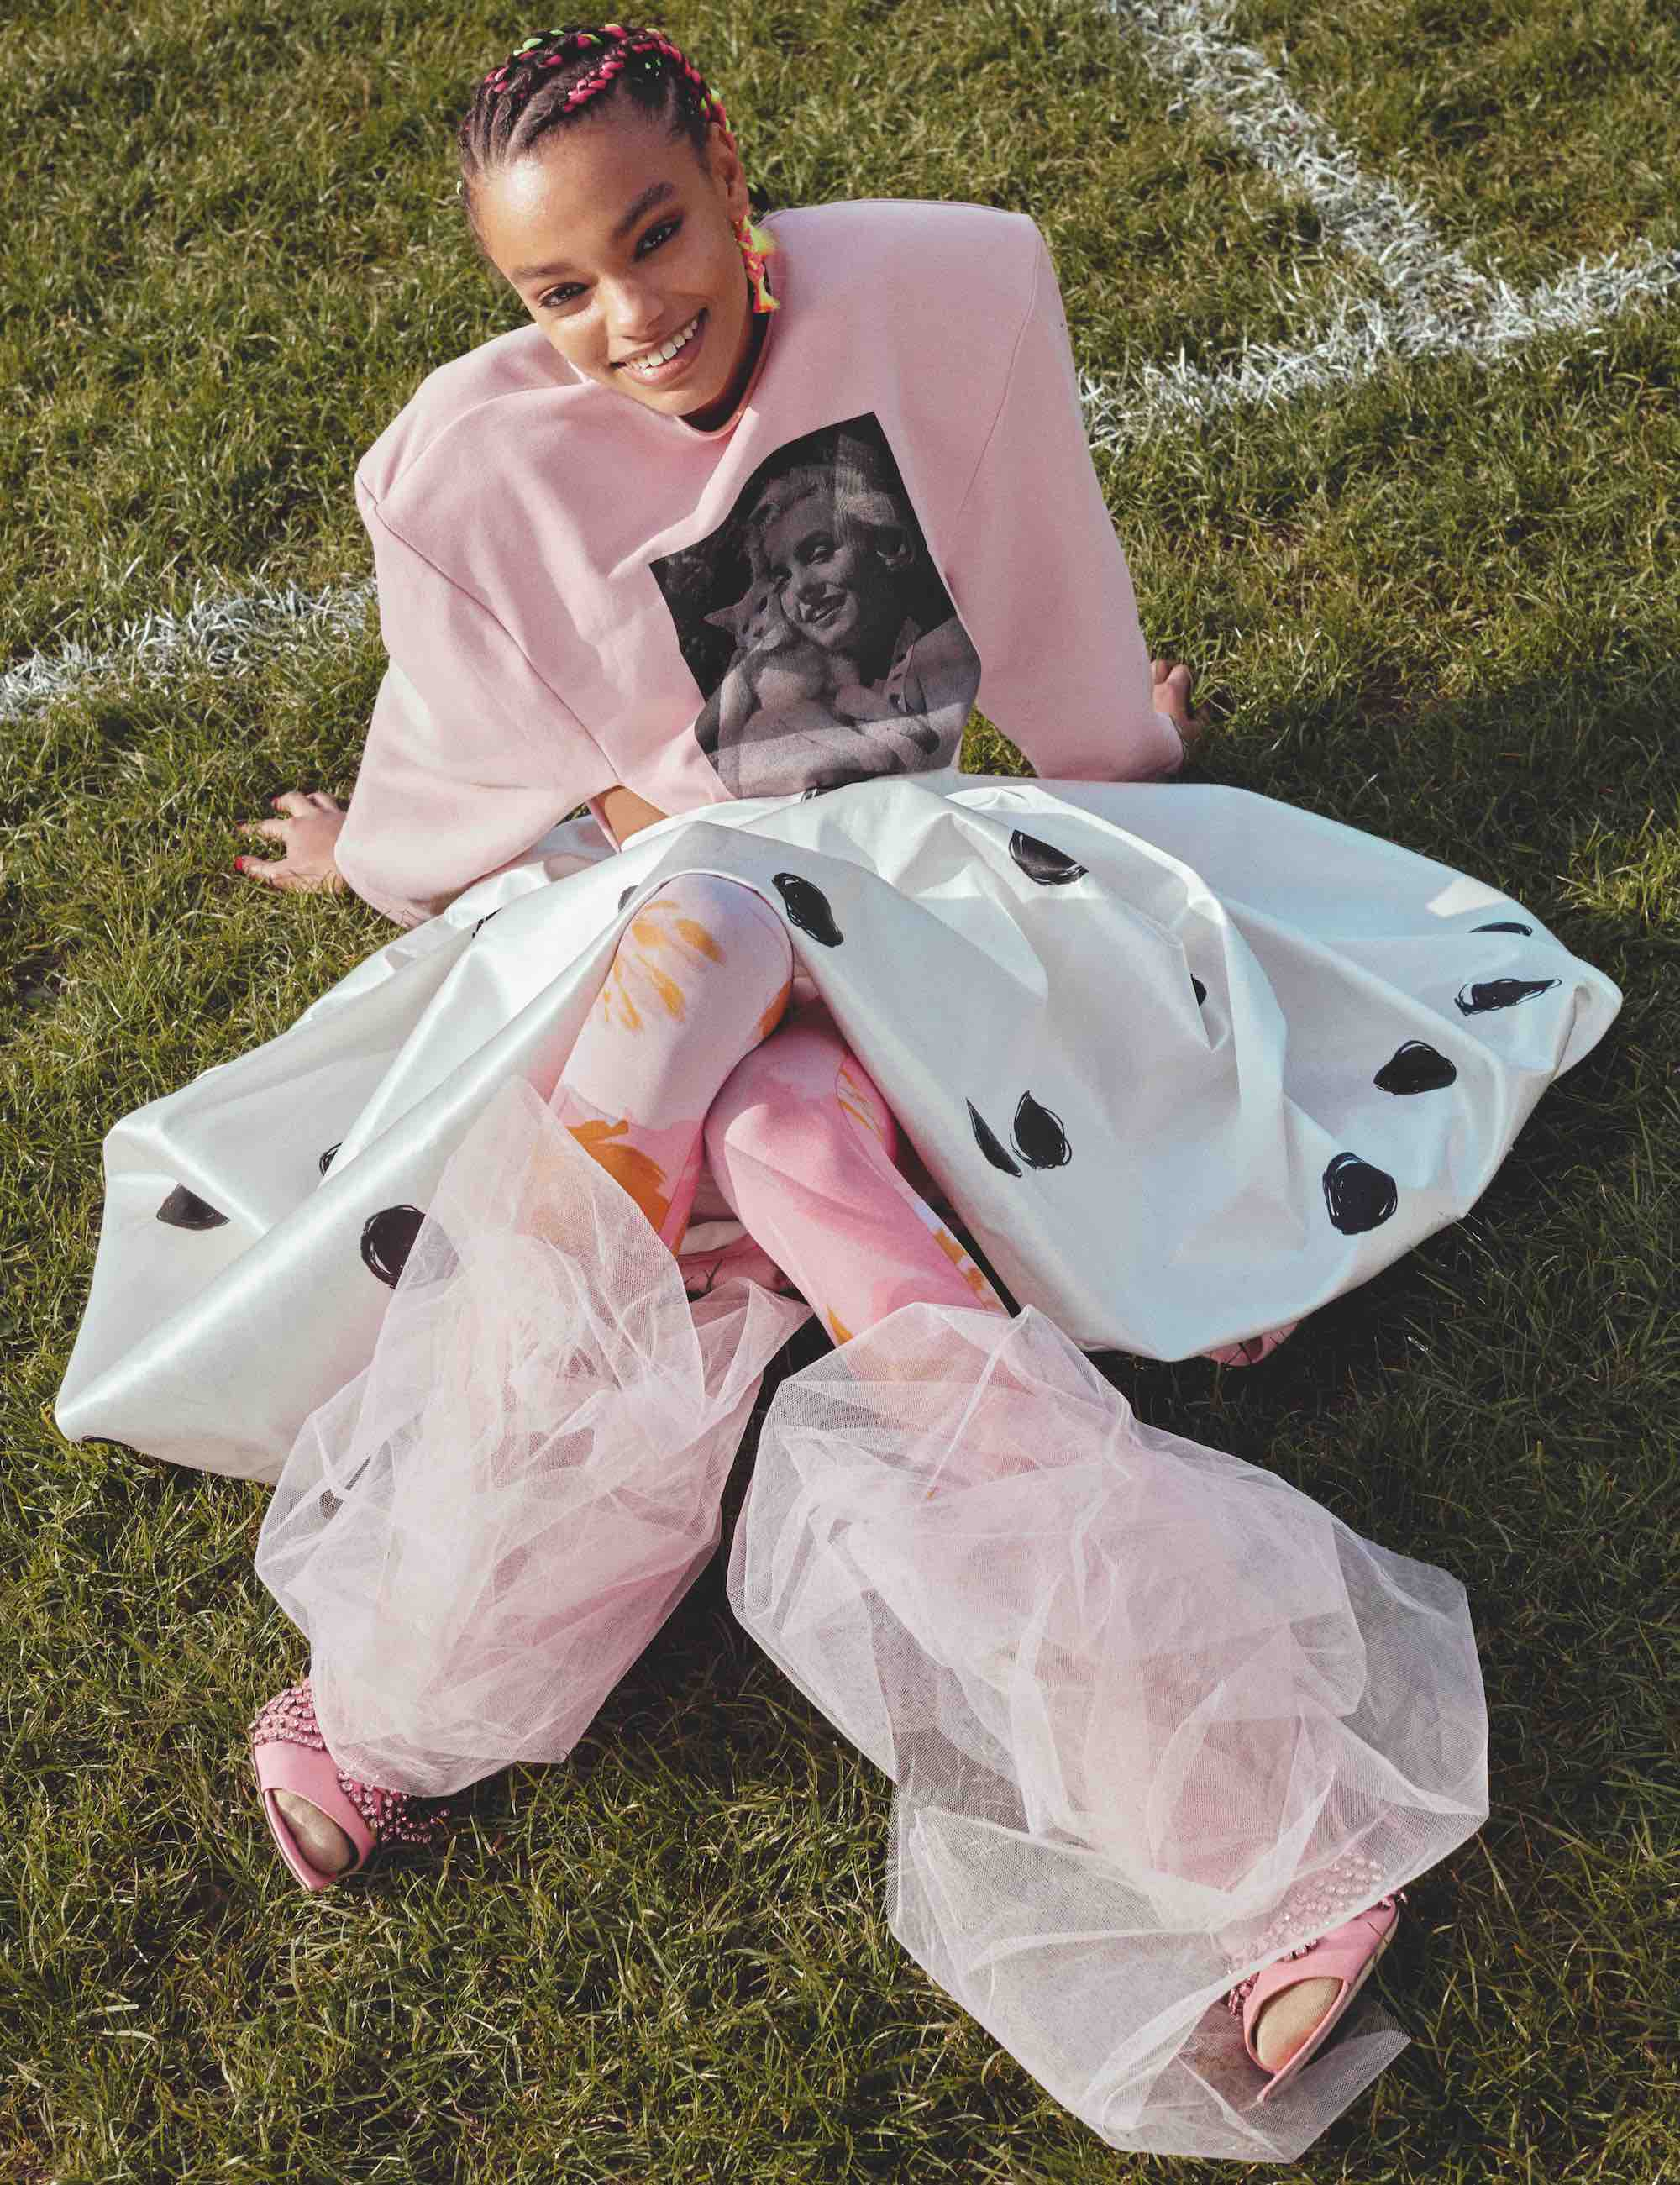 Heaven Phase 1 fashion editorial for Wonderland Summer 19 issue pink look